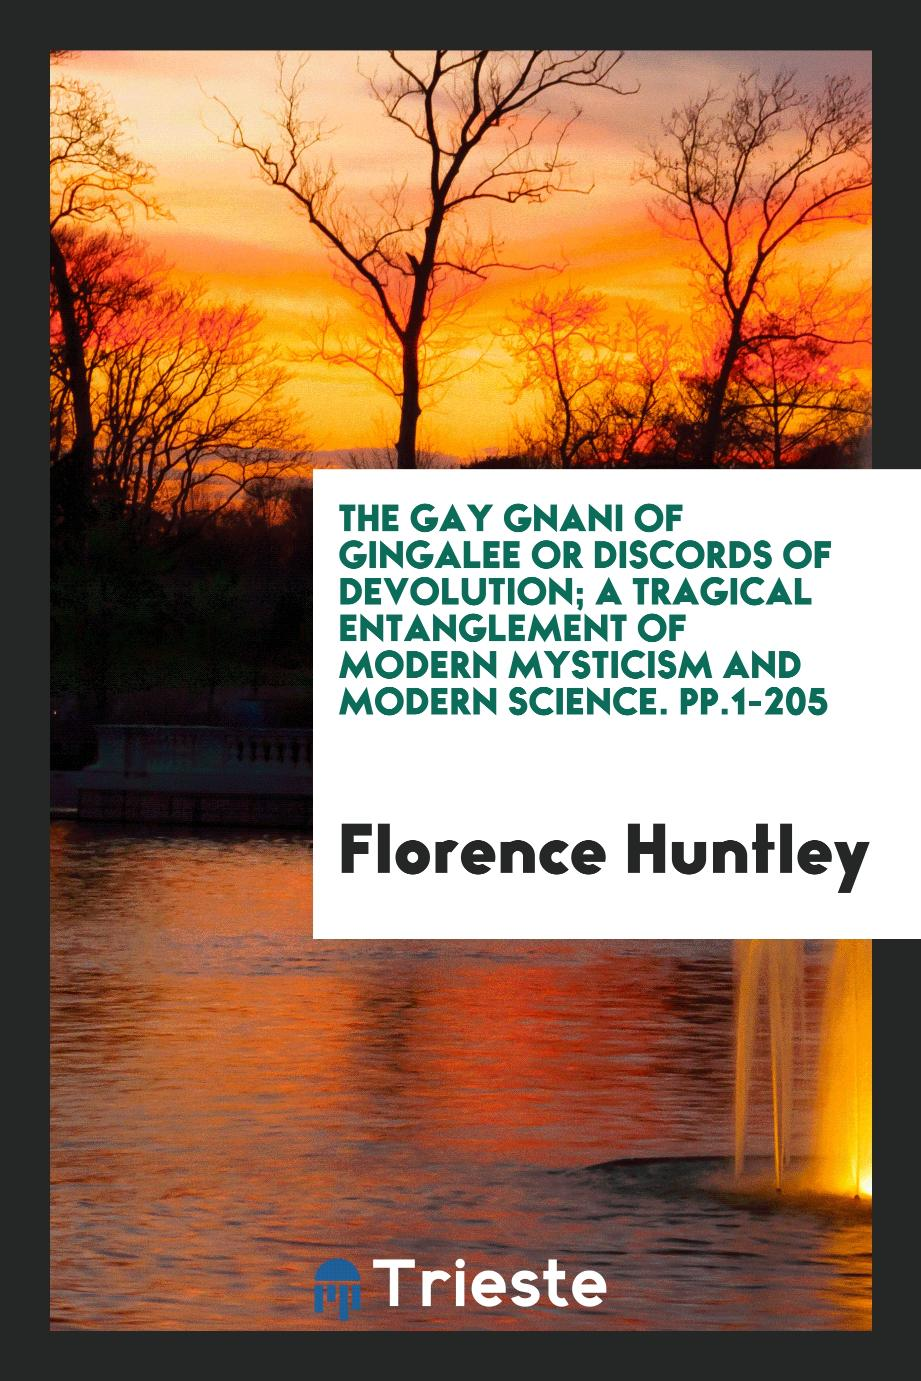 The Gay Gnani of Gingalee Or Discords of Devolution; A Tragical Entanglement of Modern Mysticism and Modern Science. pp.1-205